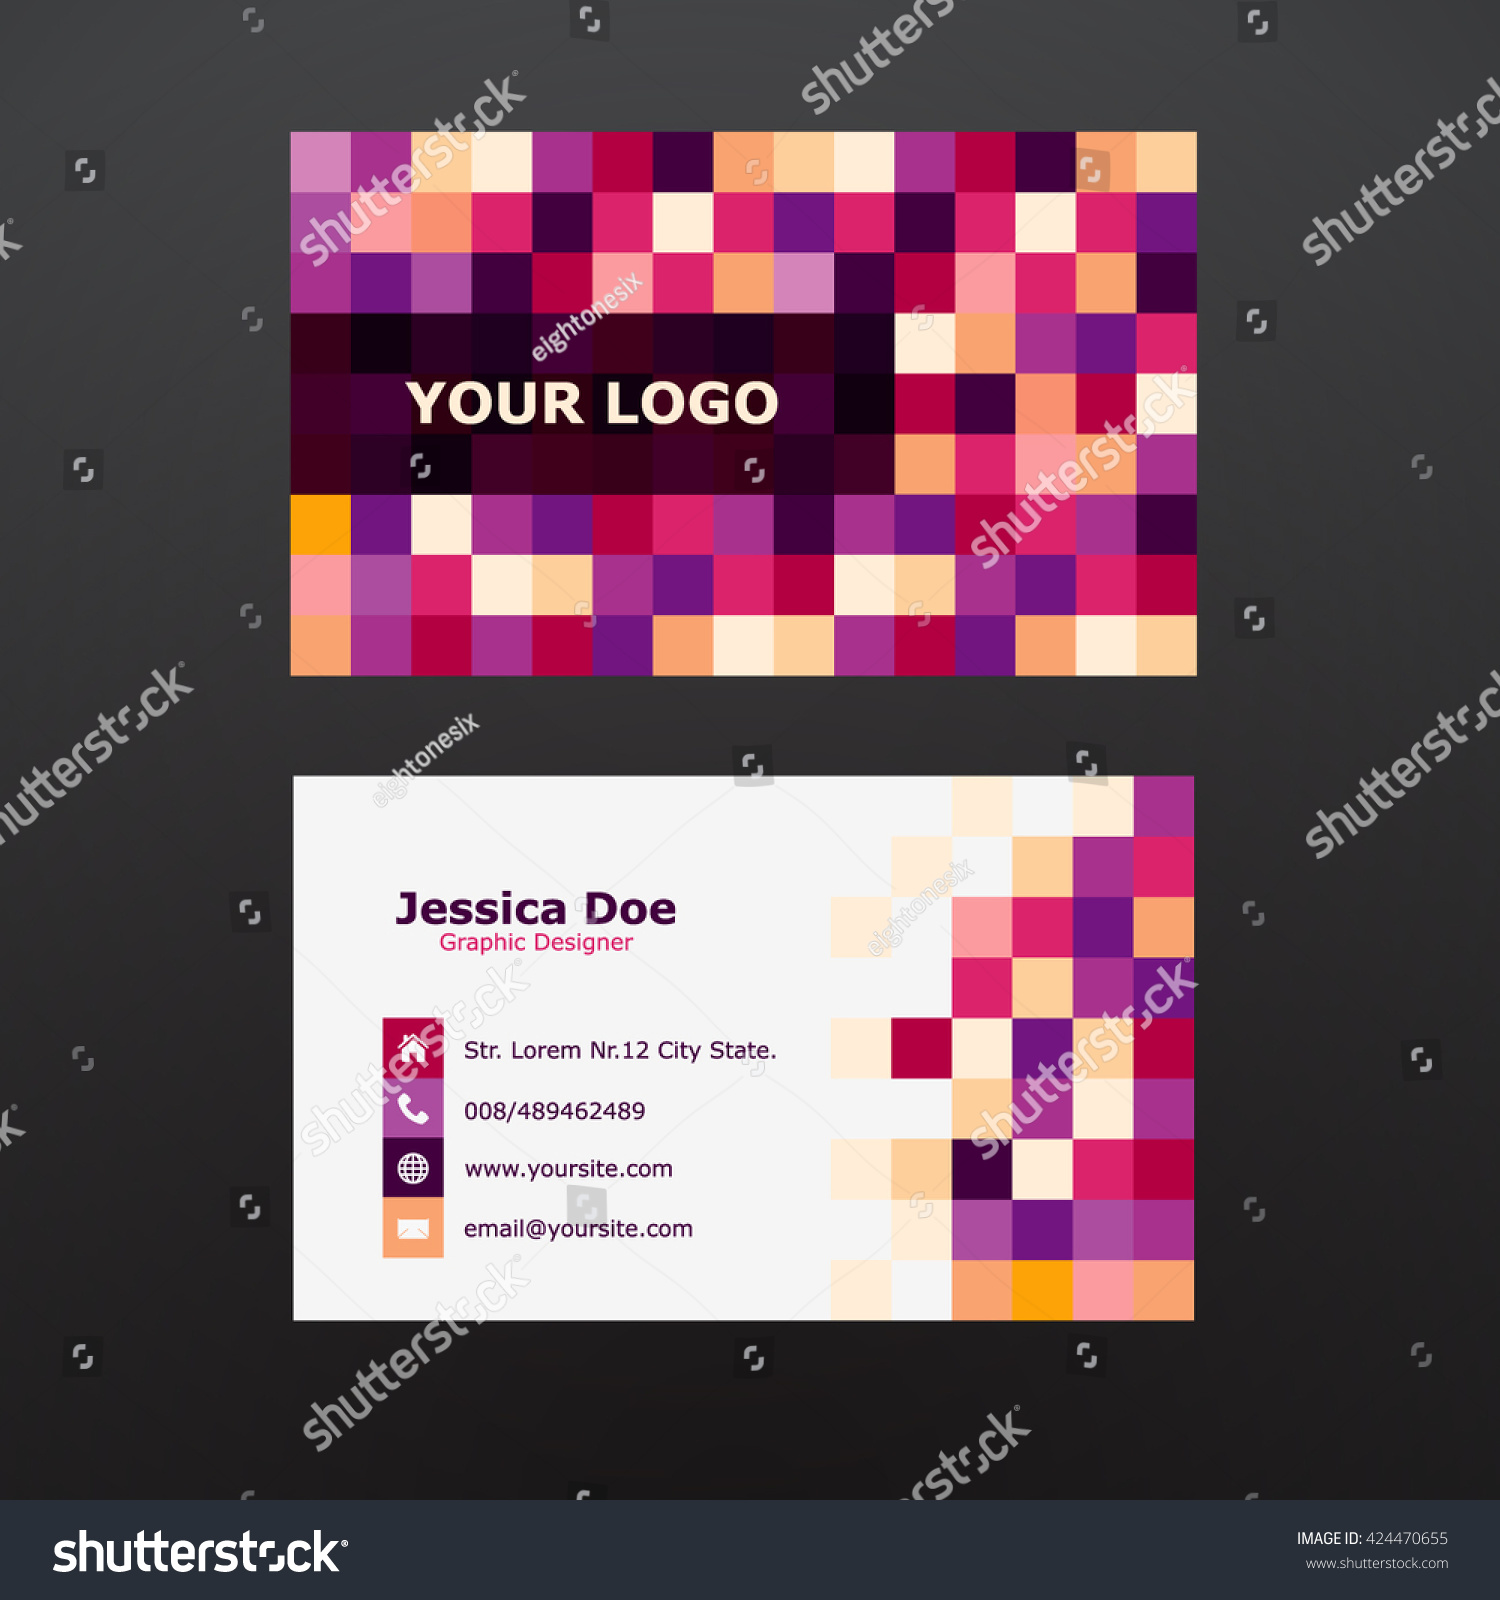 Pixel Business Card Template Stock Vector 424470655 - Shutterstock